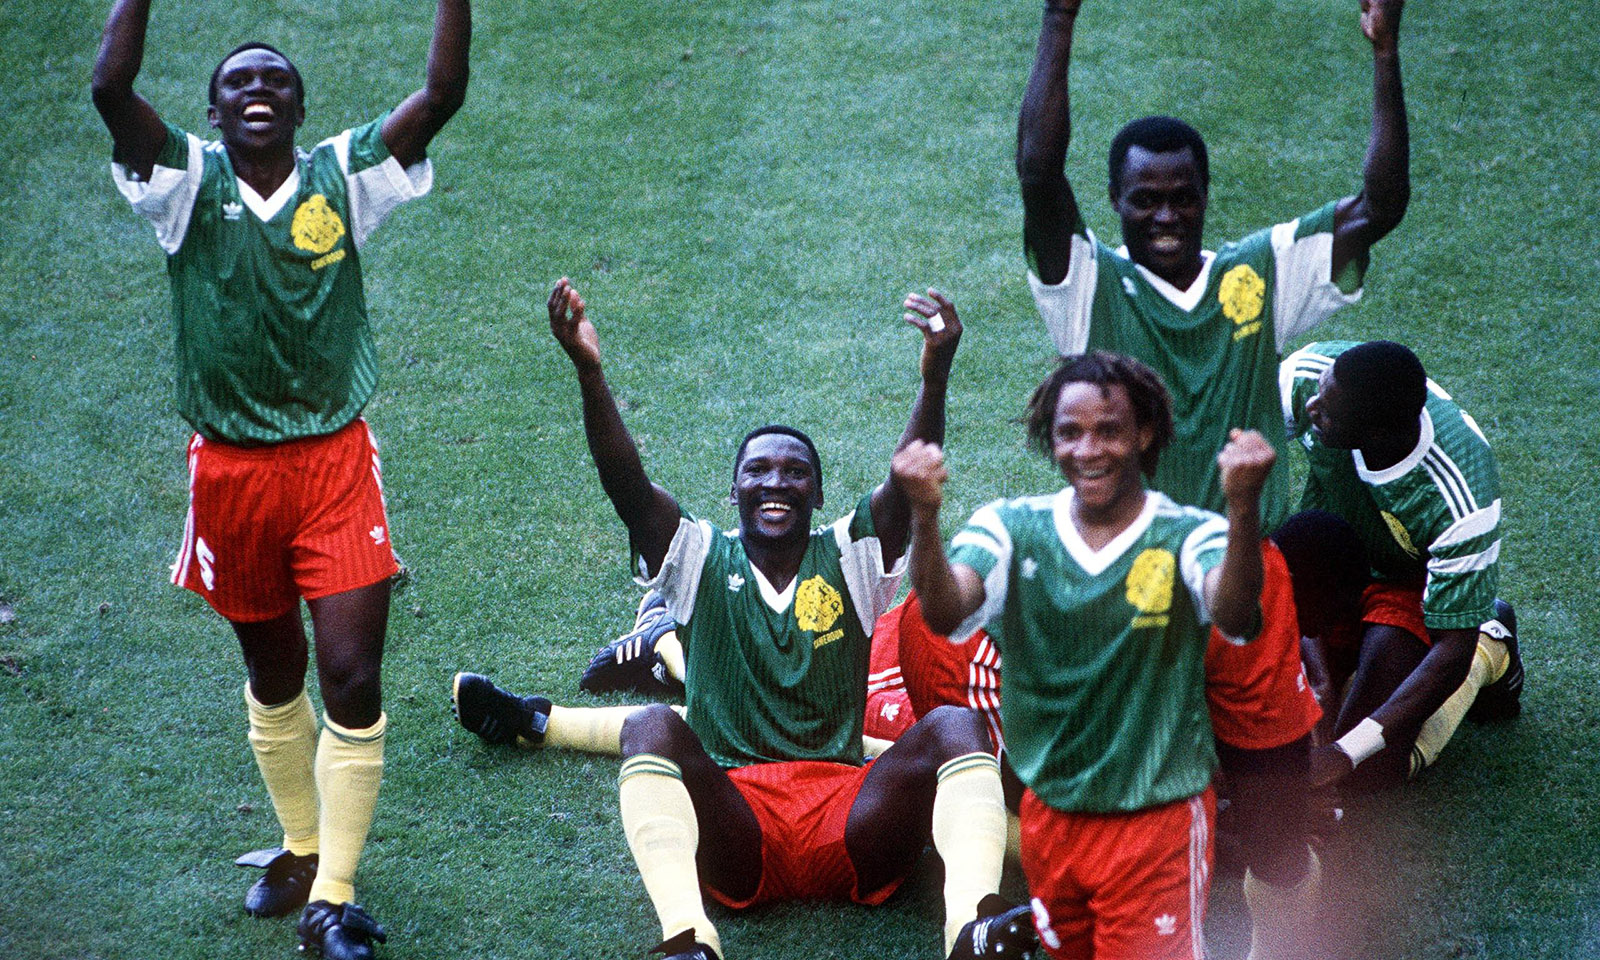 Cameroon players celebrate their goal in the win against Argentina at the 1990 World Cup